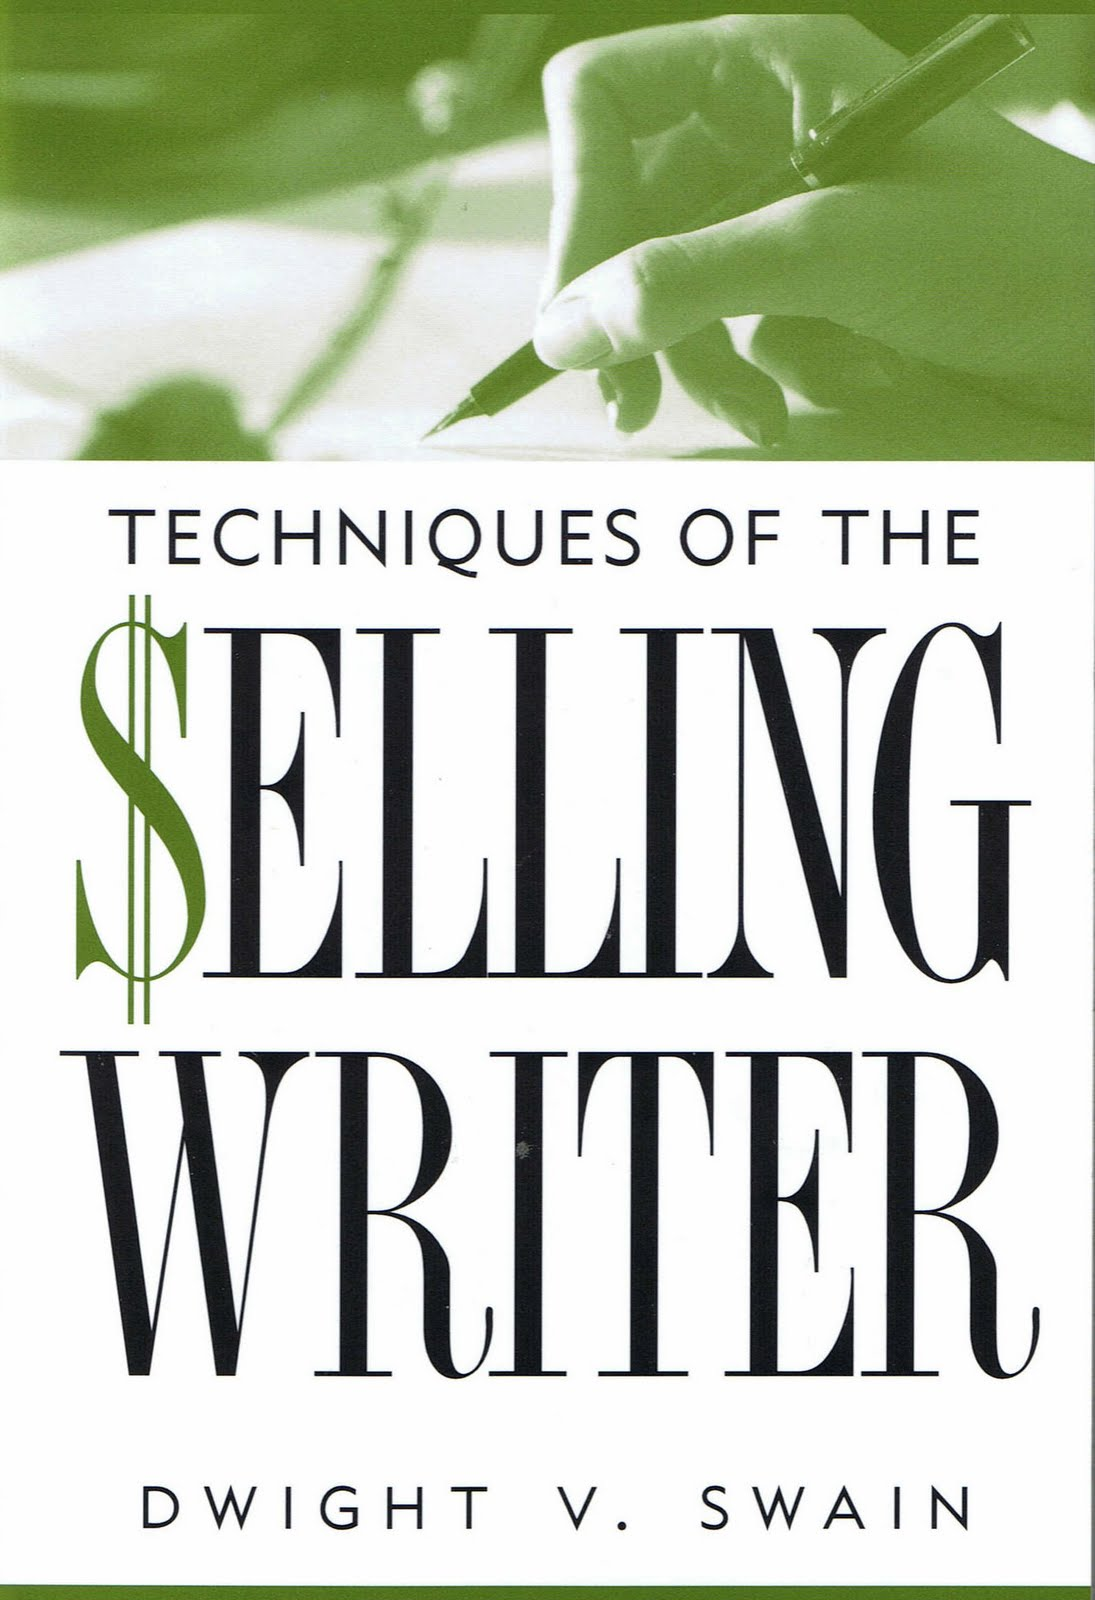 Best book review writer